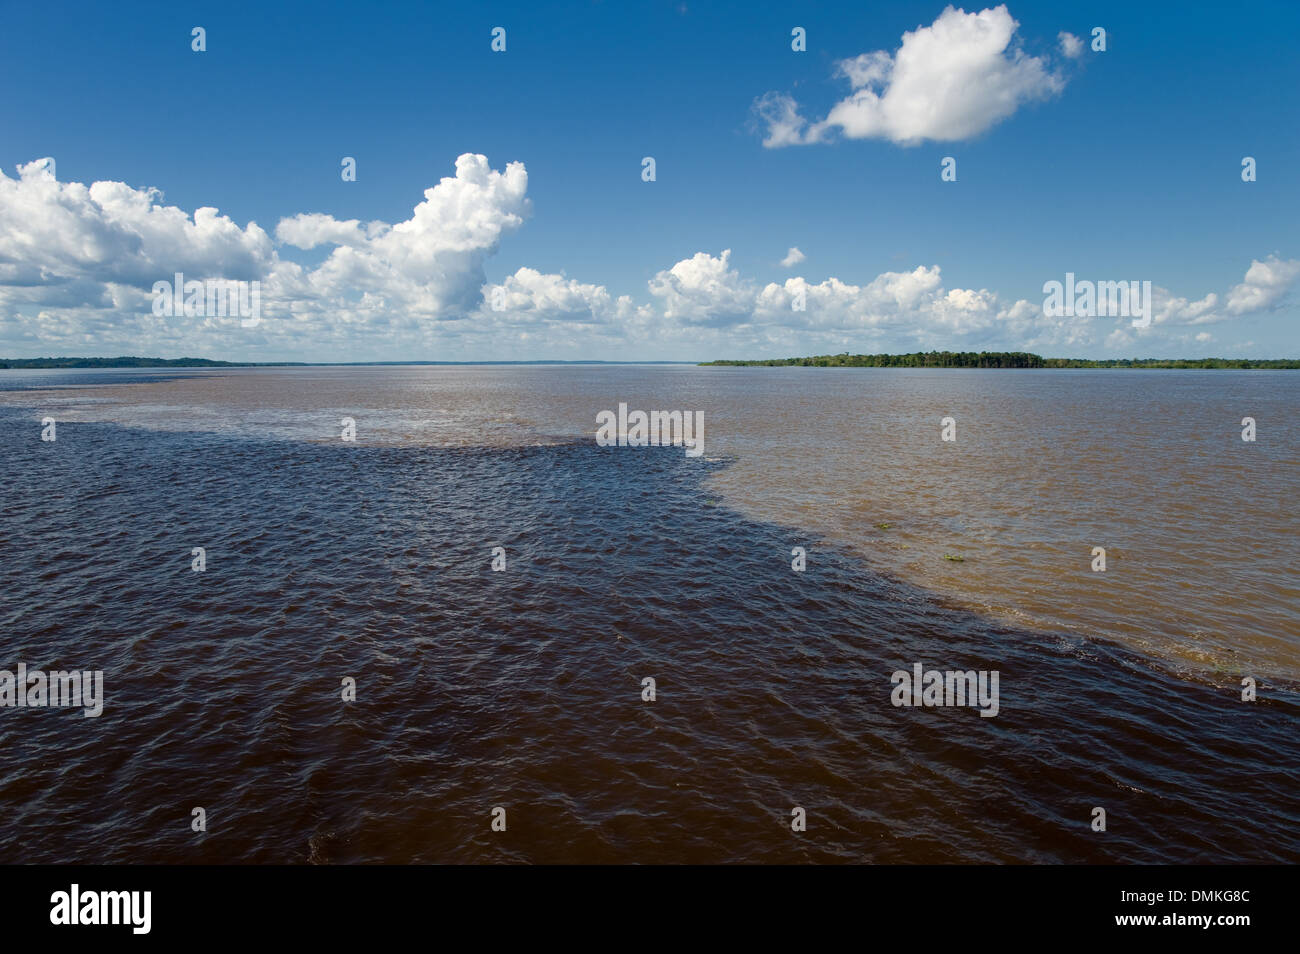 Meeting of Waters with Rio Negro and Amazon River, in the Amazon in Brazil - Stock Image